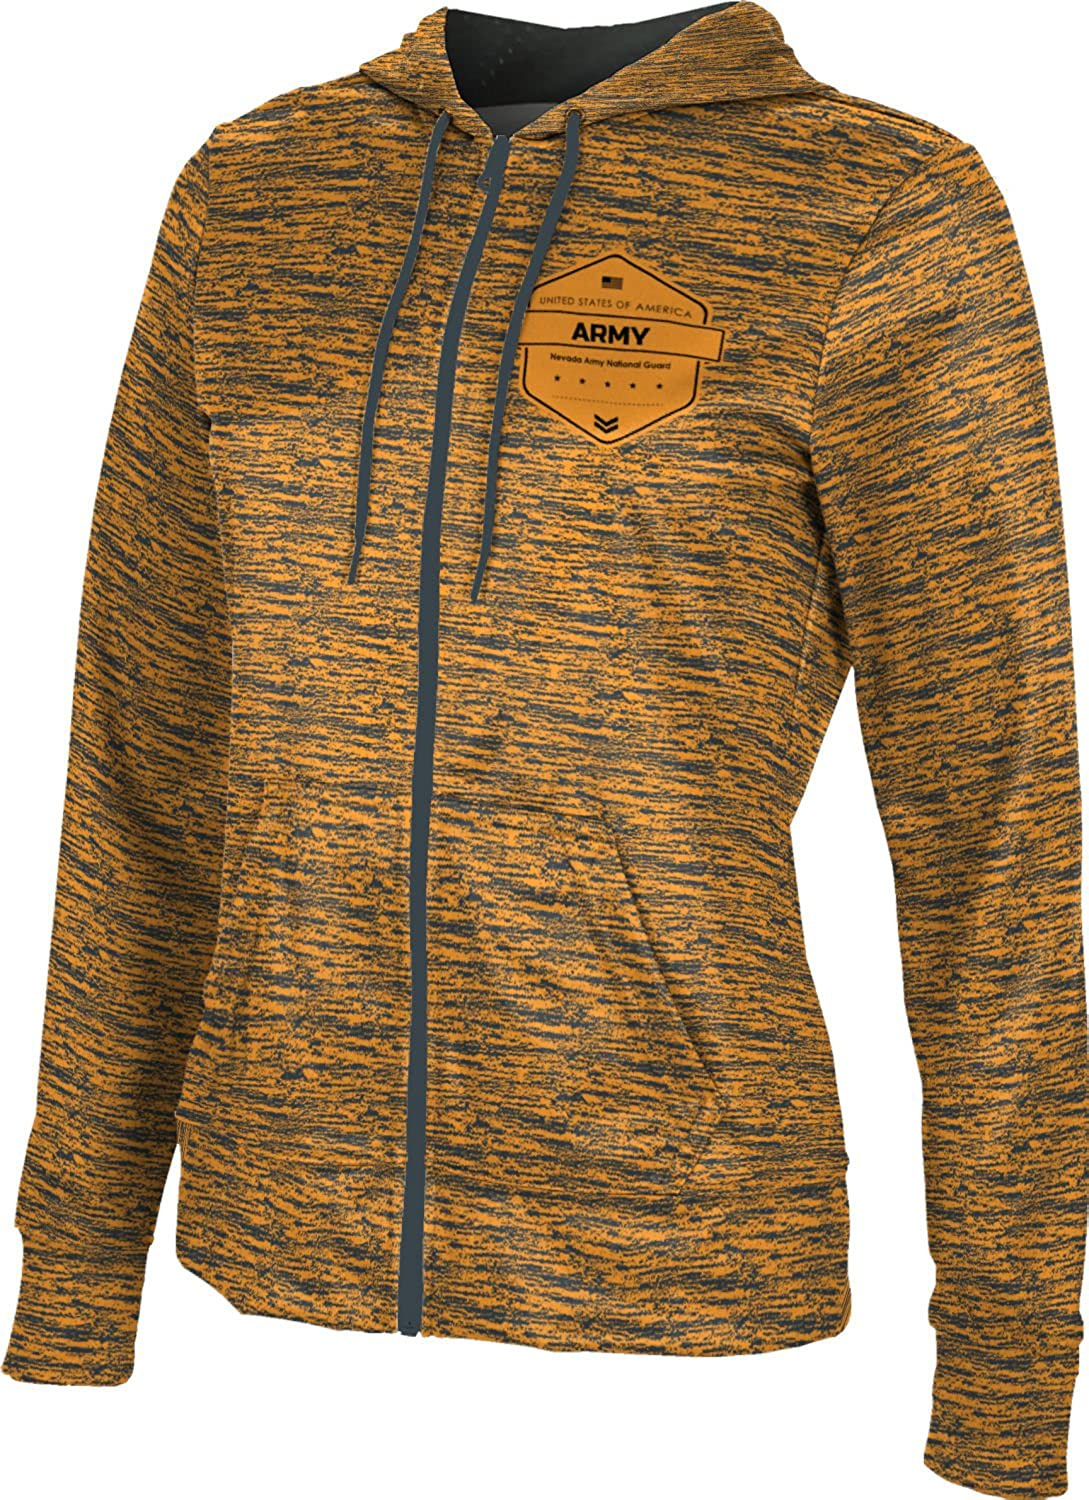 ProSphere Women's Nevada Army National Guard Military Brushed Fullzip Hoodie